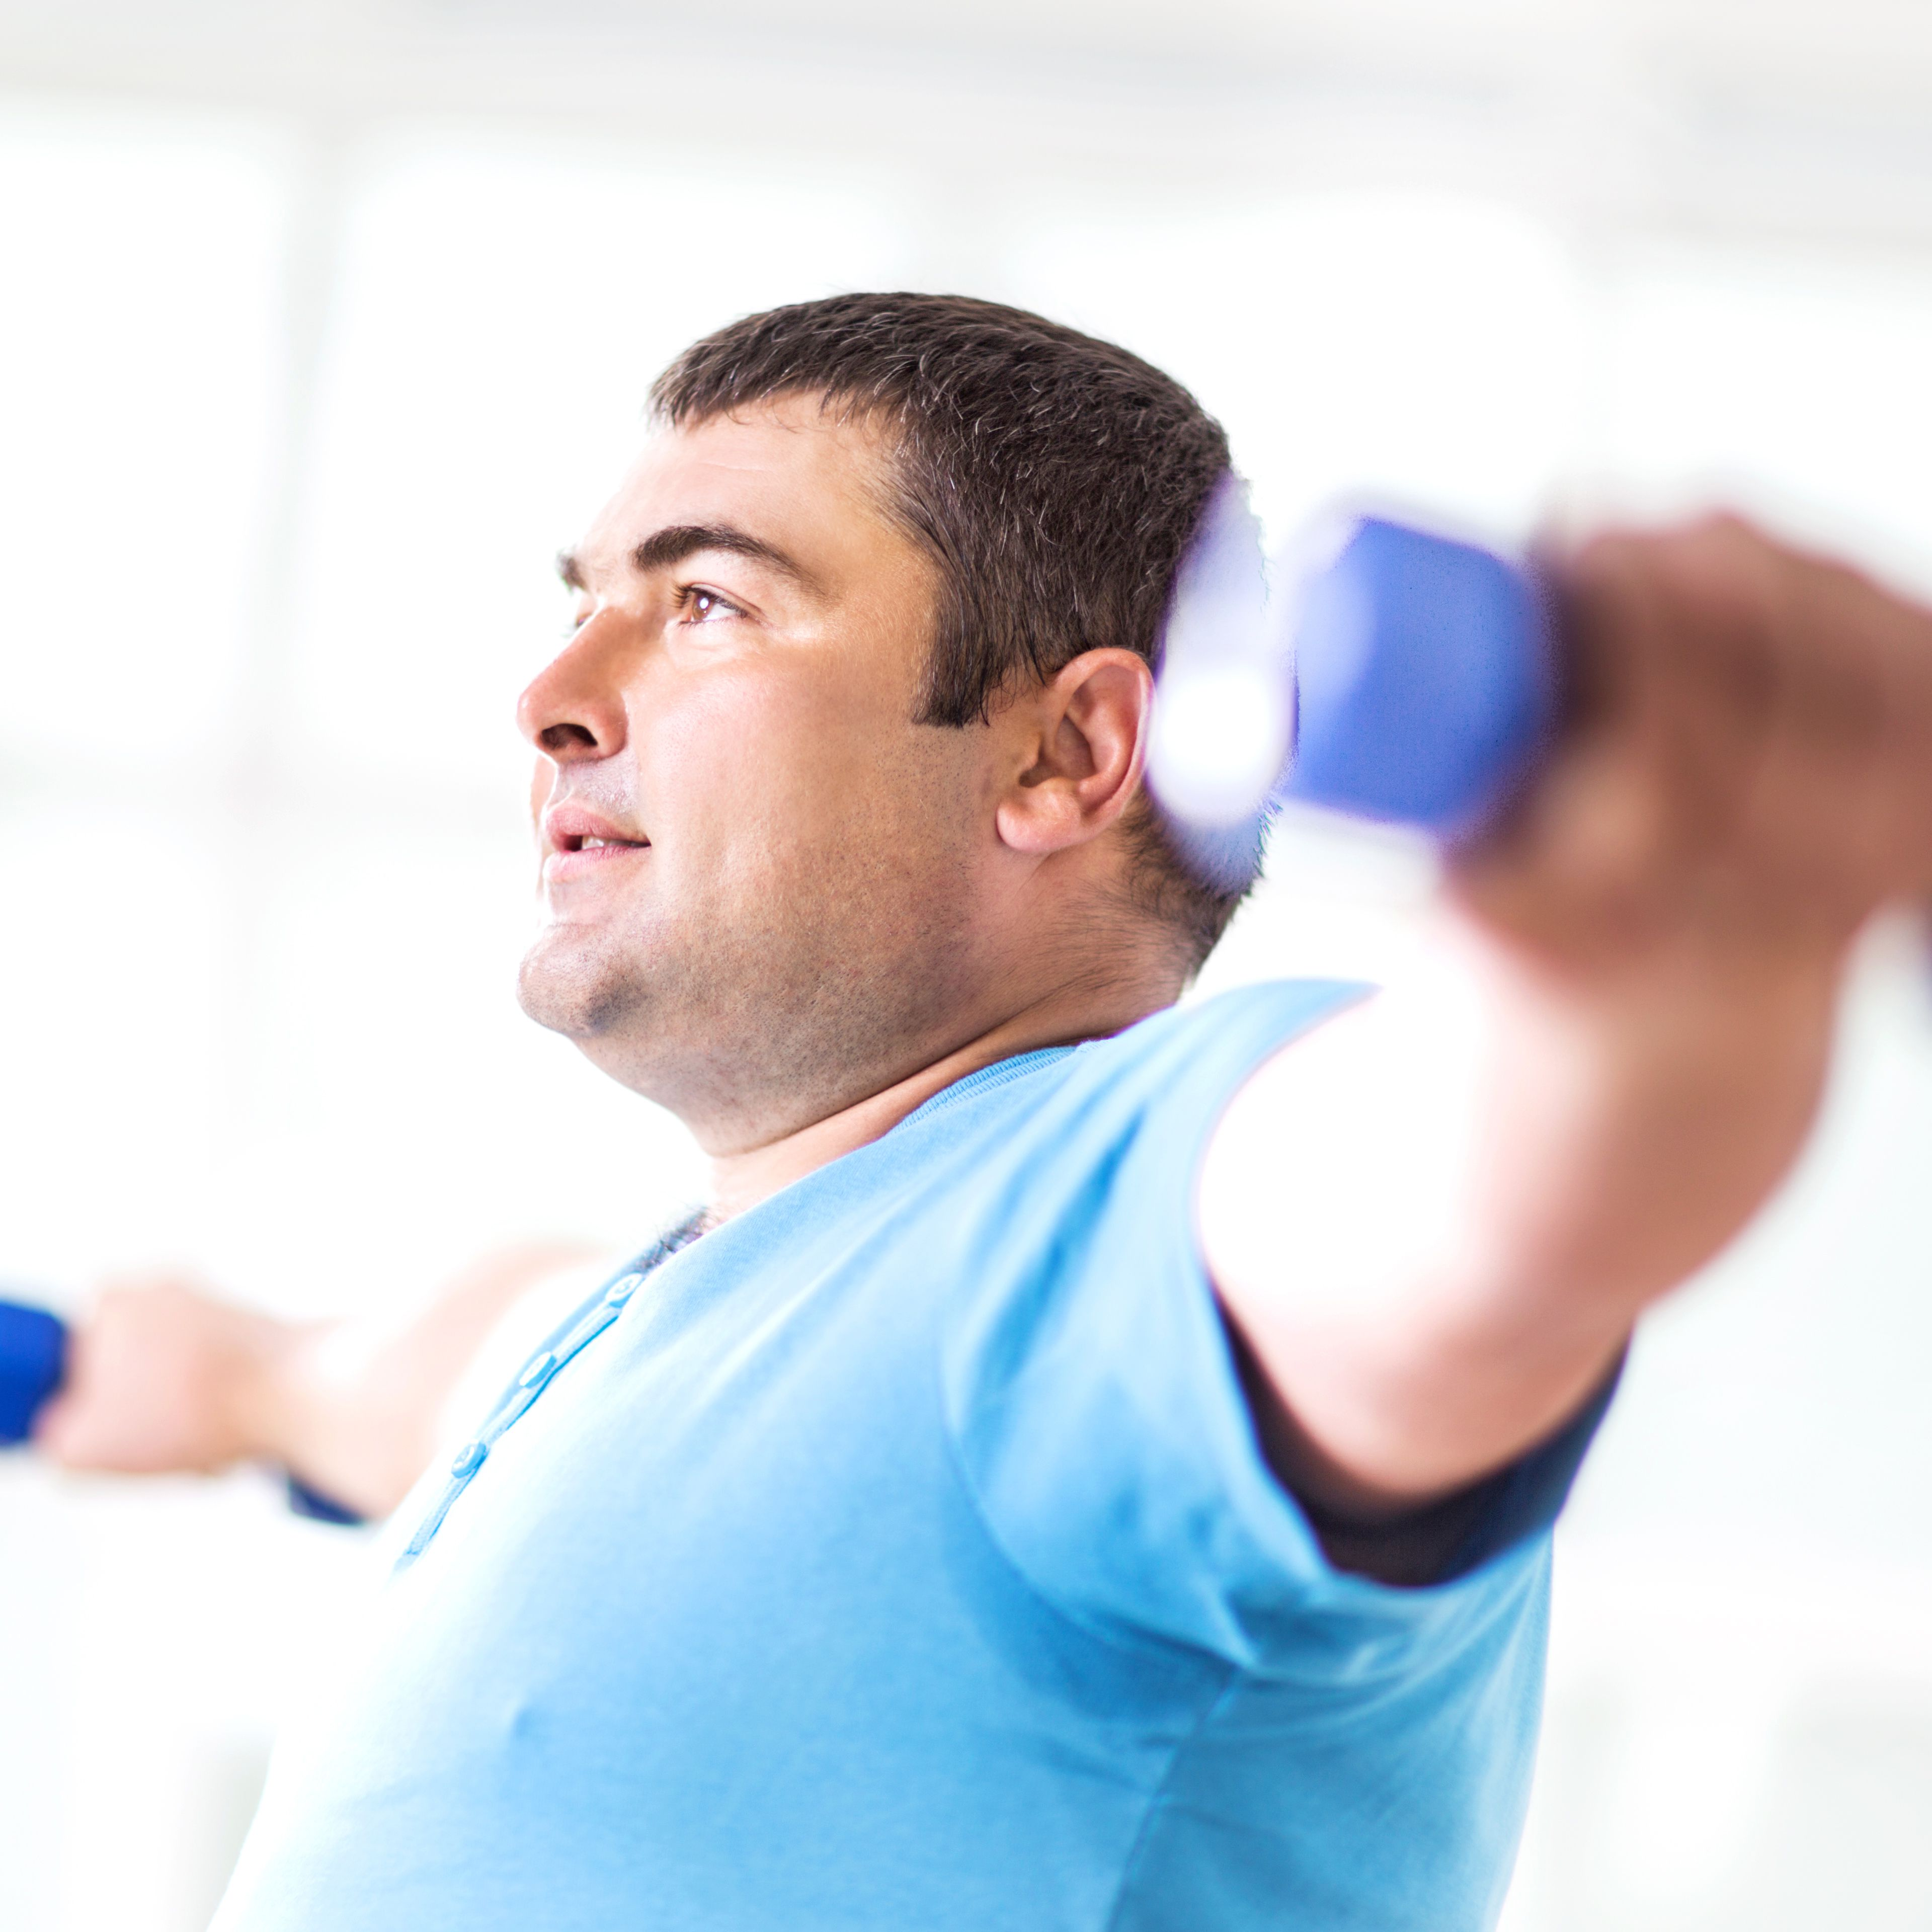 Beginner S Guide To Weight Loss With Strength Training